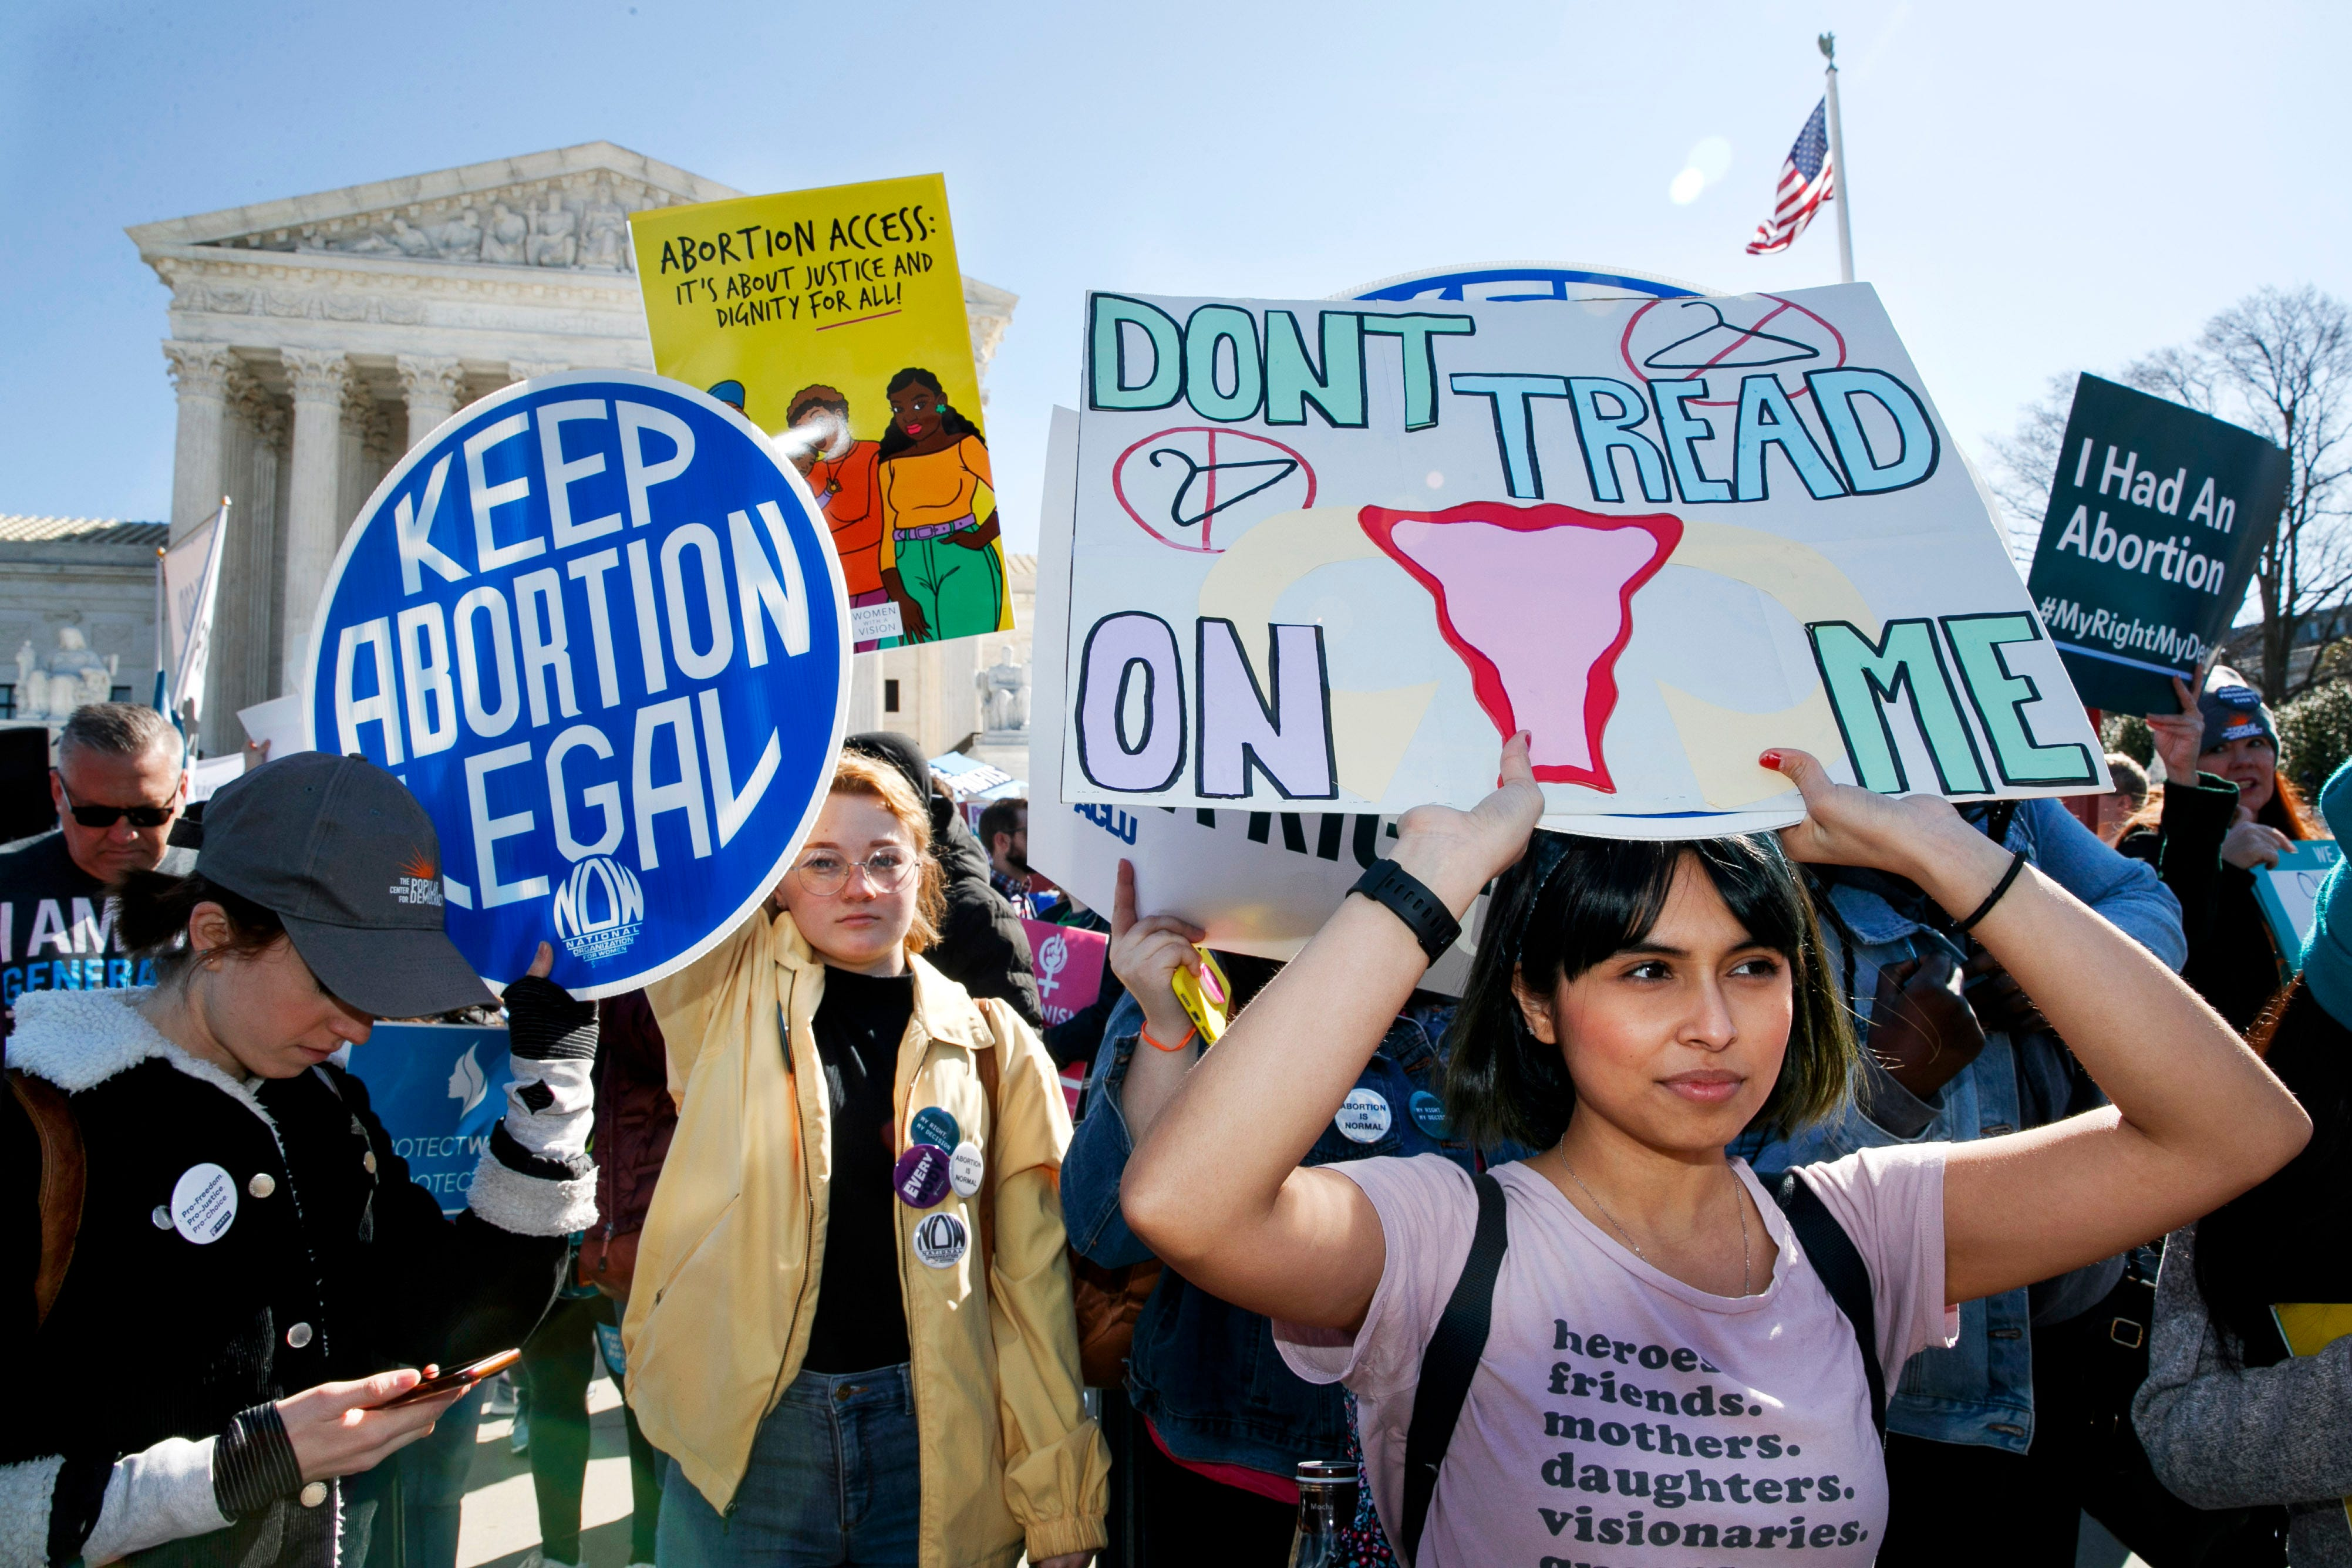 Republicans would miss legal abortion, just like they would have missed Obamacare